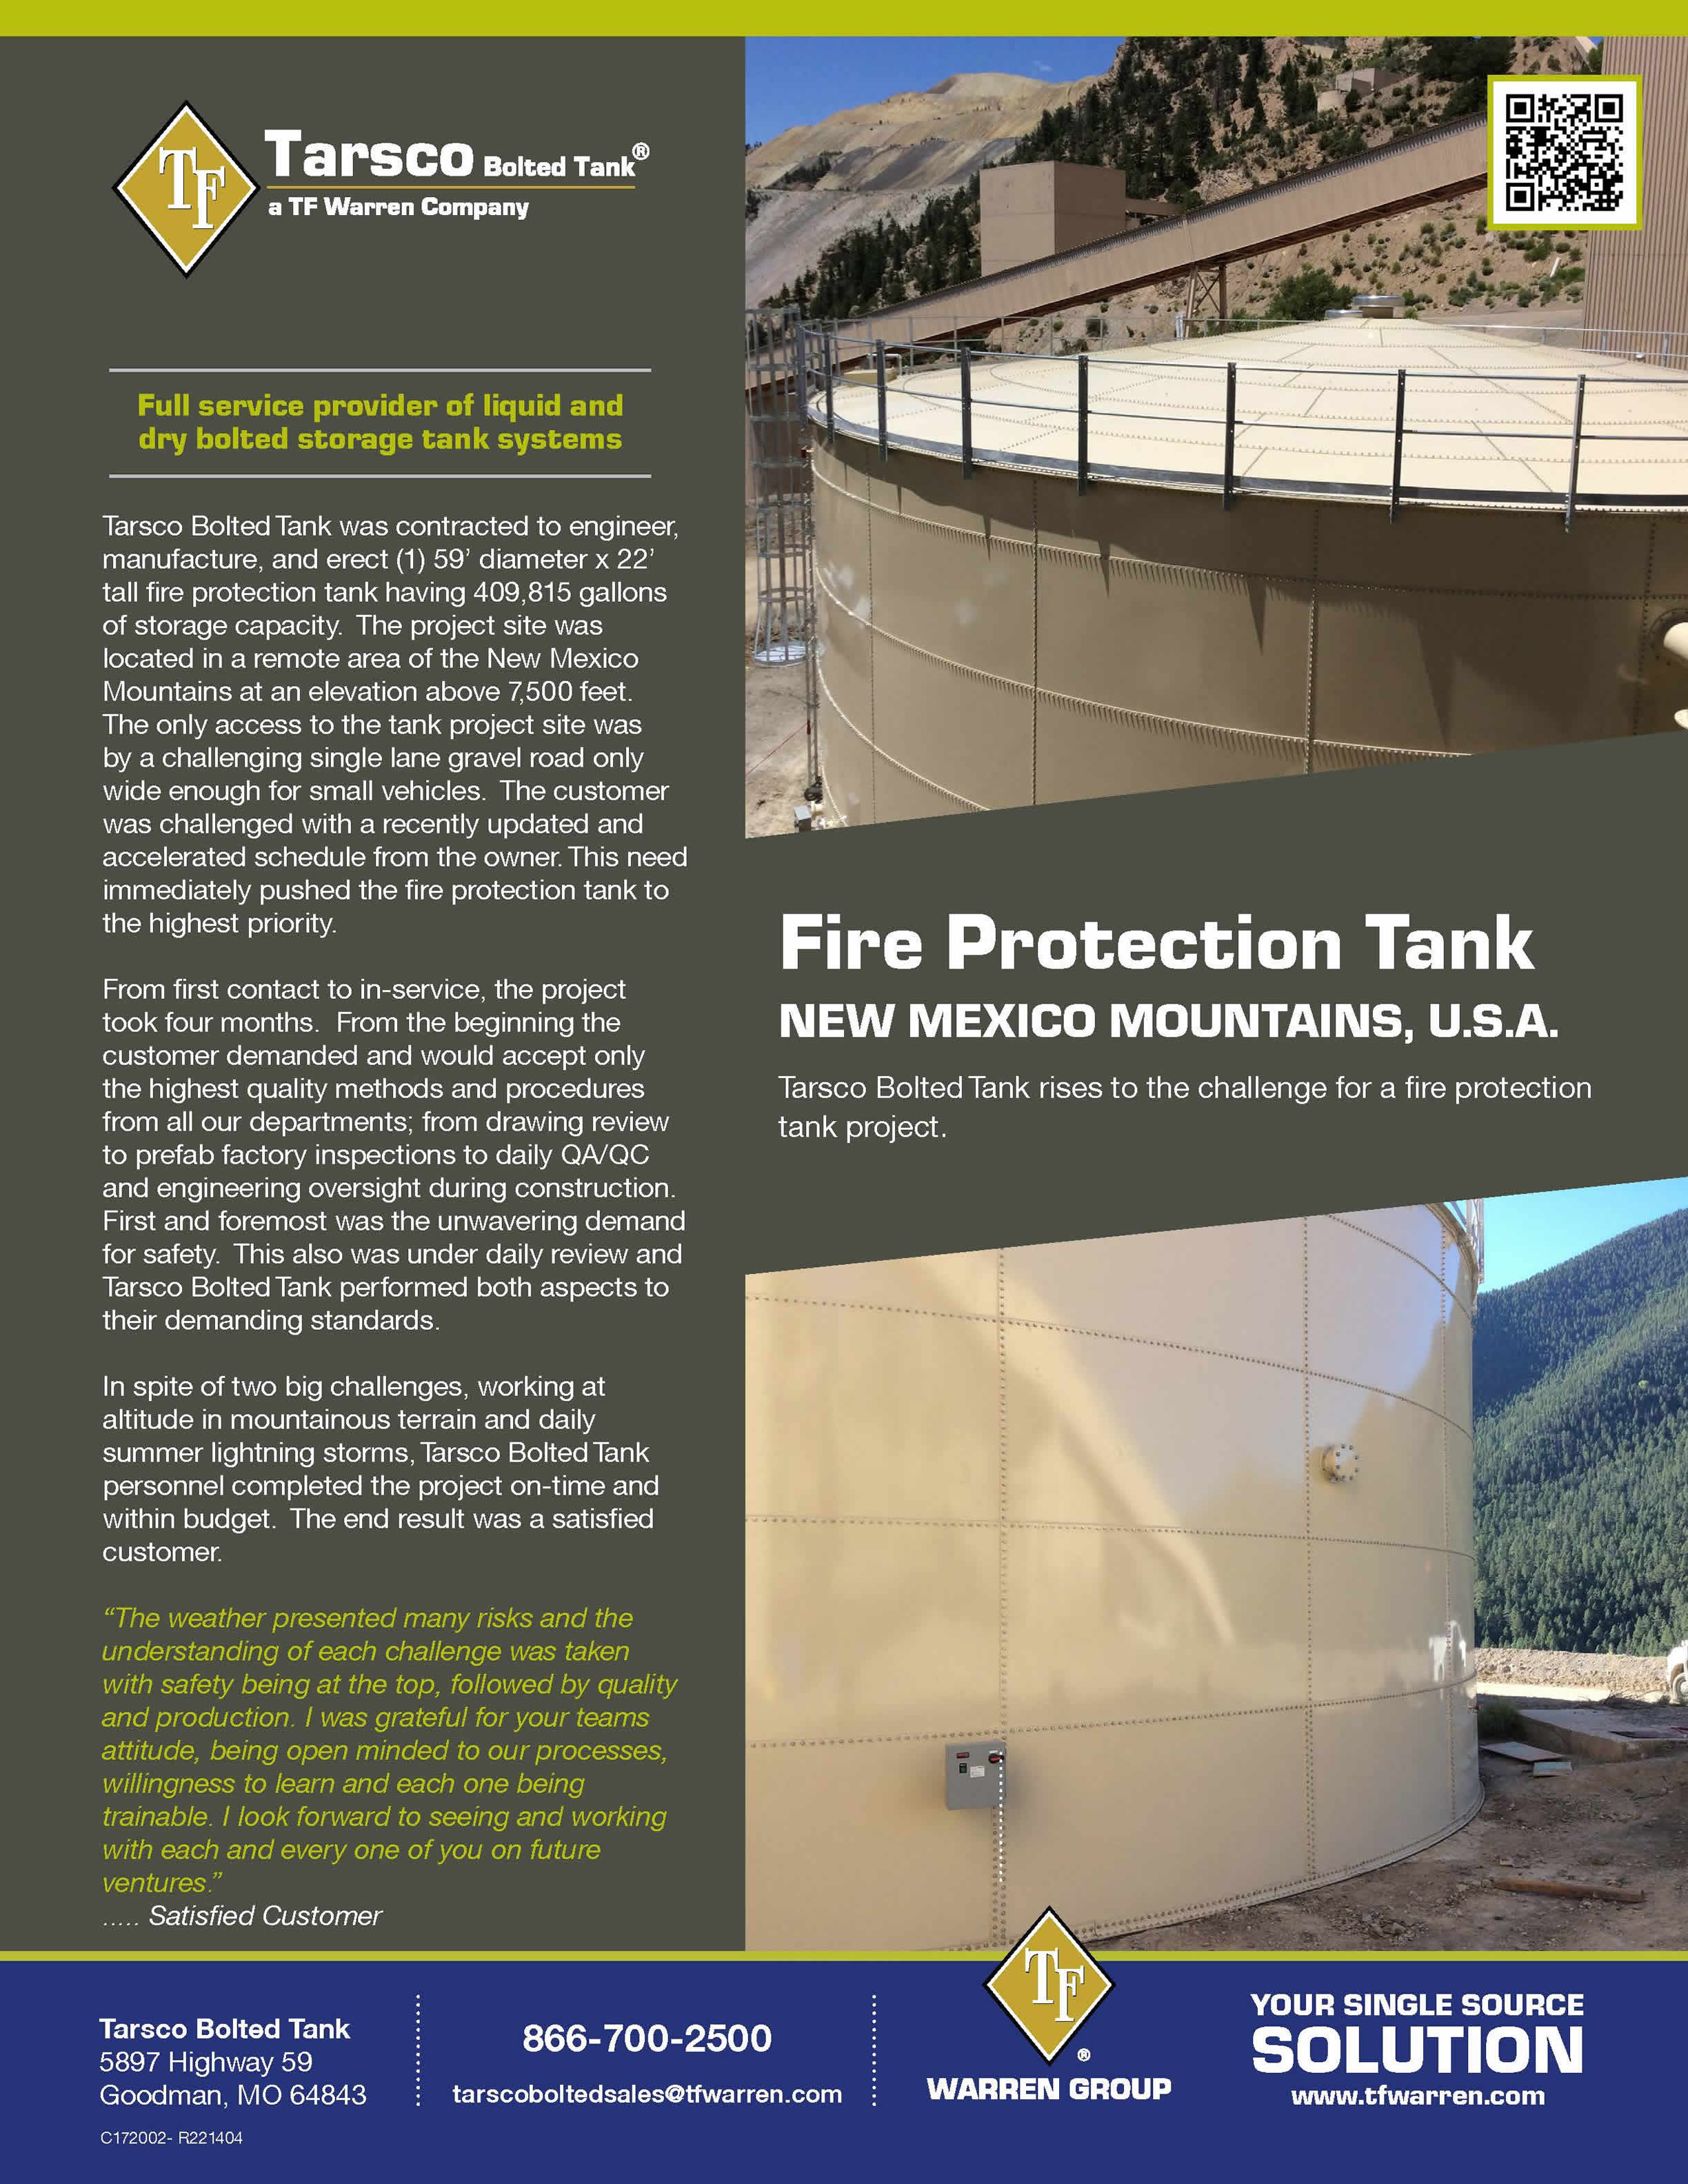 Fire Protection Tank, New Mexico Mountains